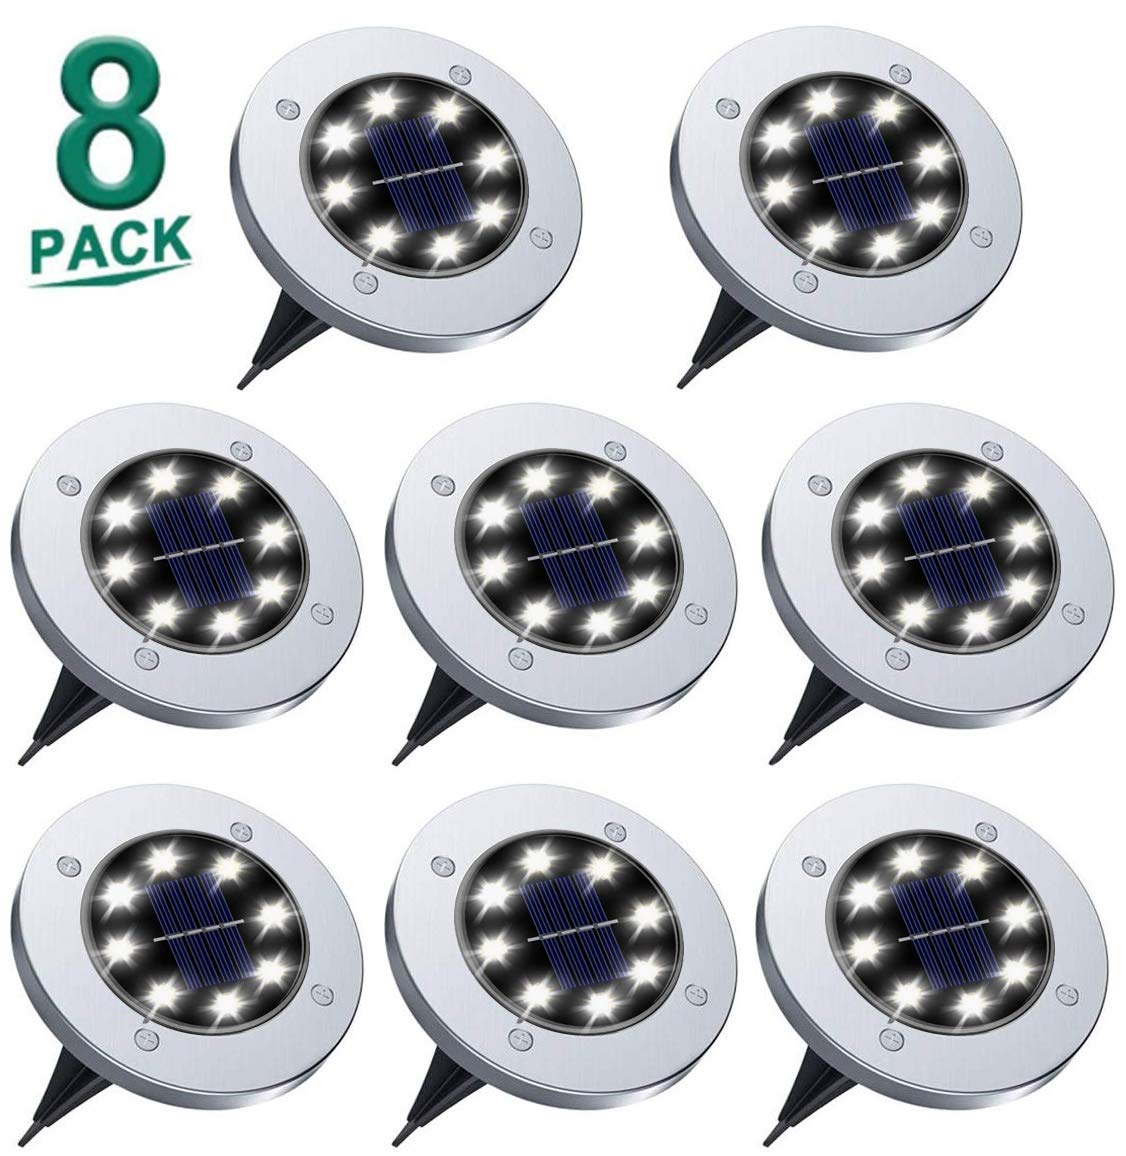 Rishayh Solar Ground Lights, Garden Pathway Outdoor in-Ground Lights with 8 LED (8 Pack White) by Rishayh